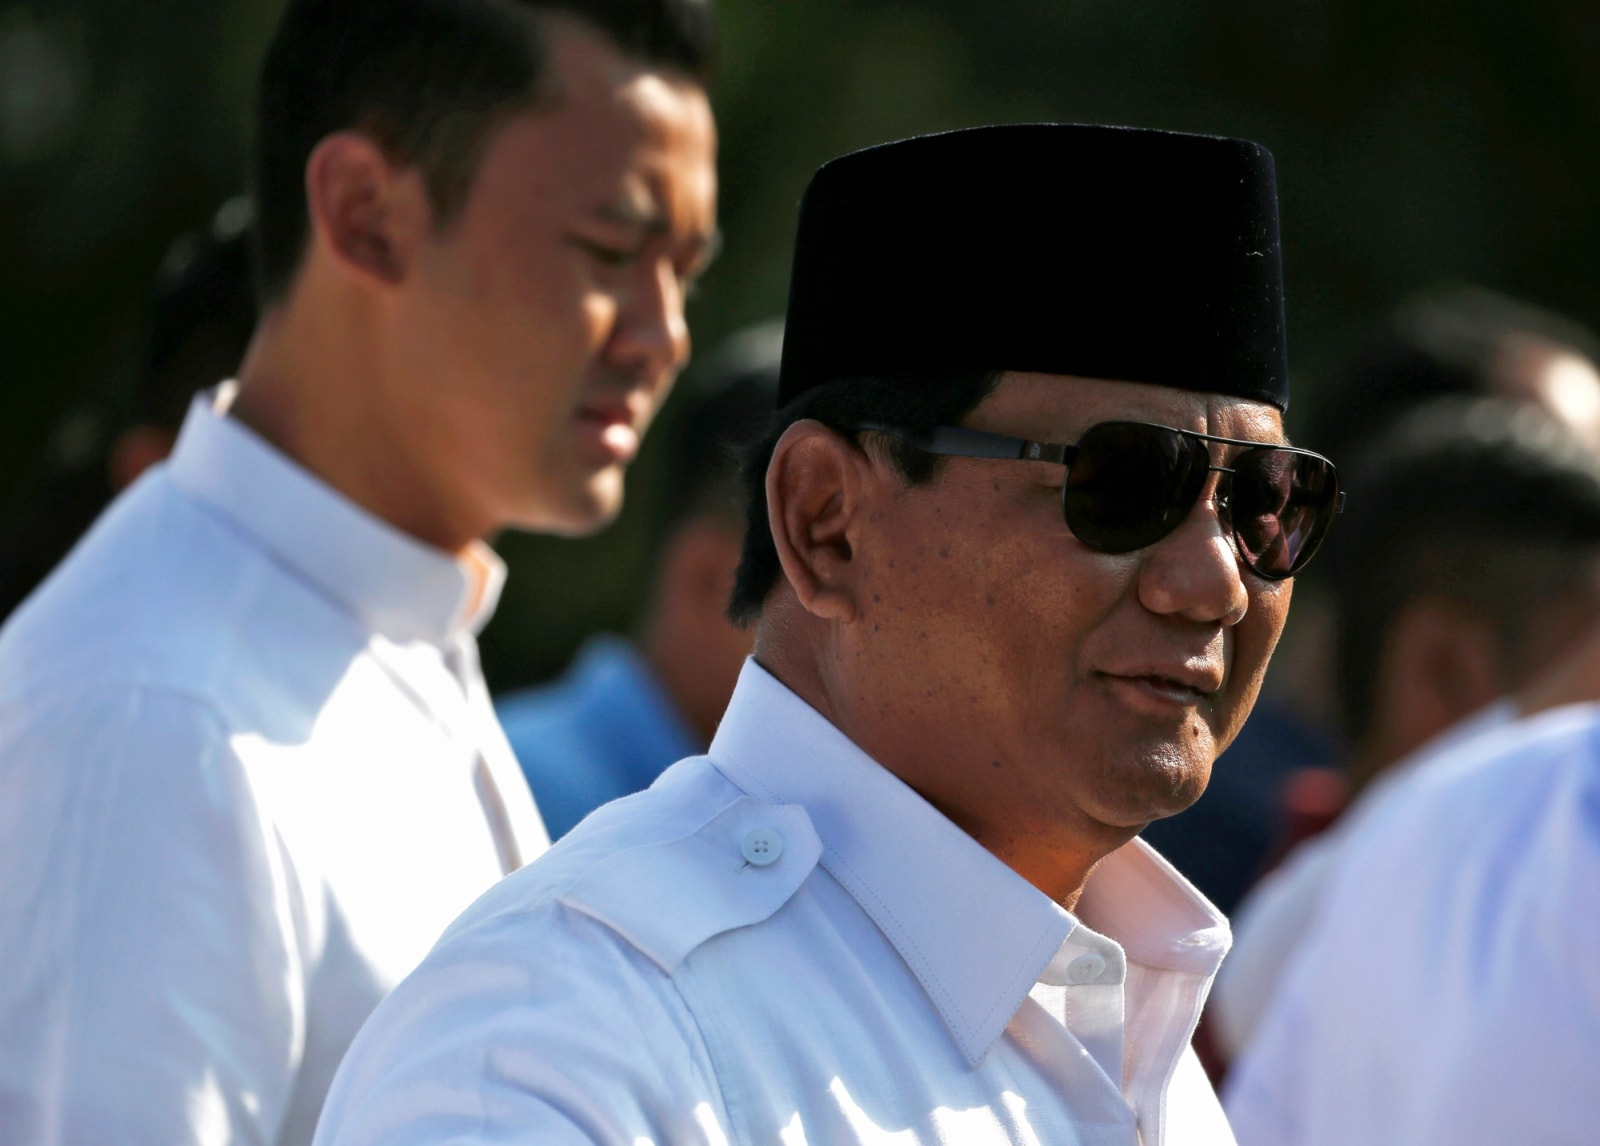 Indonesian presidential candidate Prabowo Subianto at a polling booth during elections in Bogor, West Java, Indonesia April 17, 2019. REUTERS/Willy Kurniawan